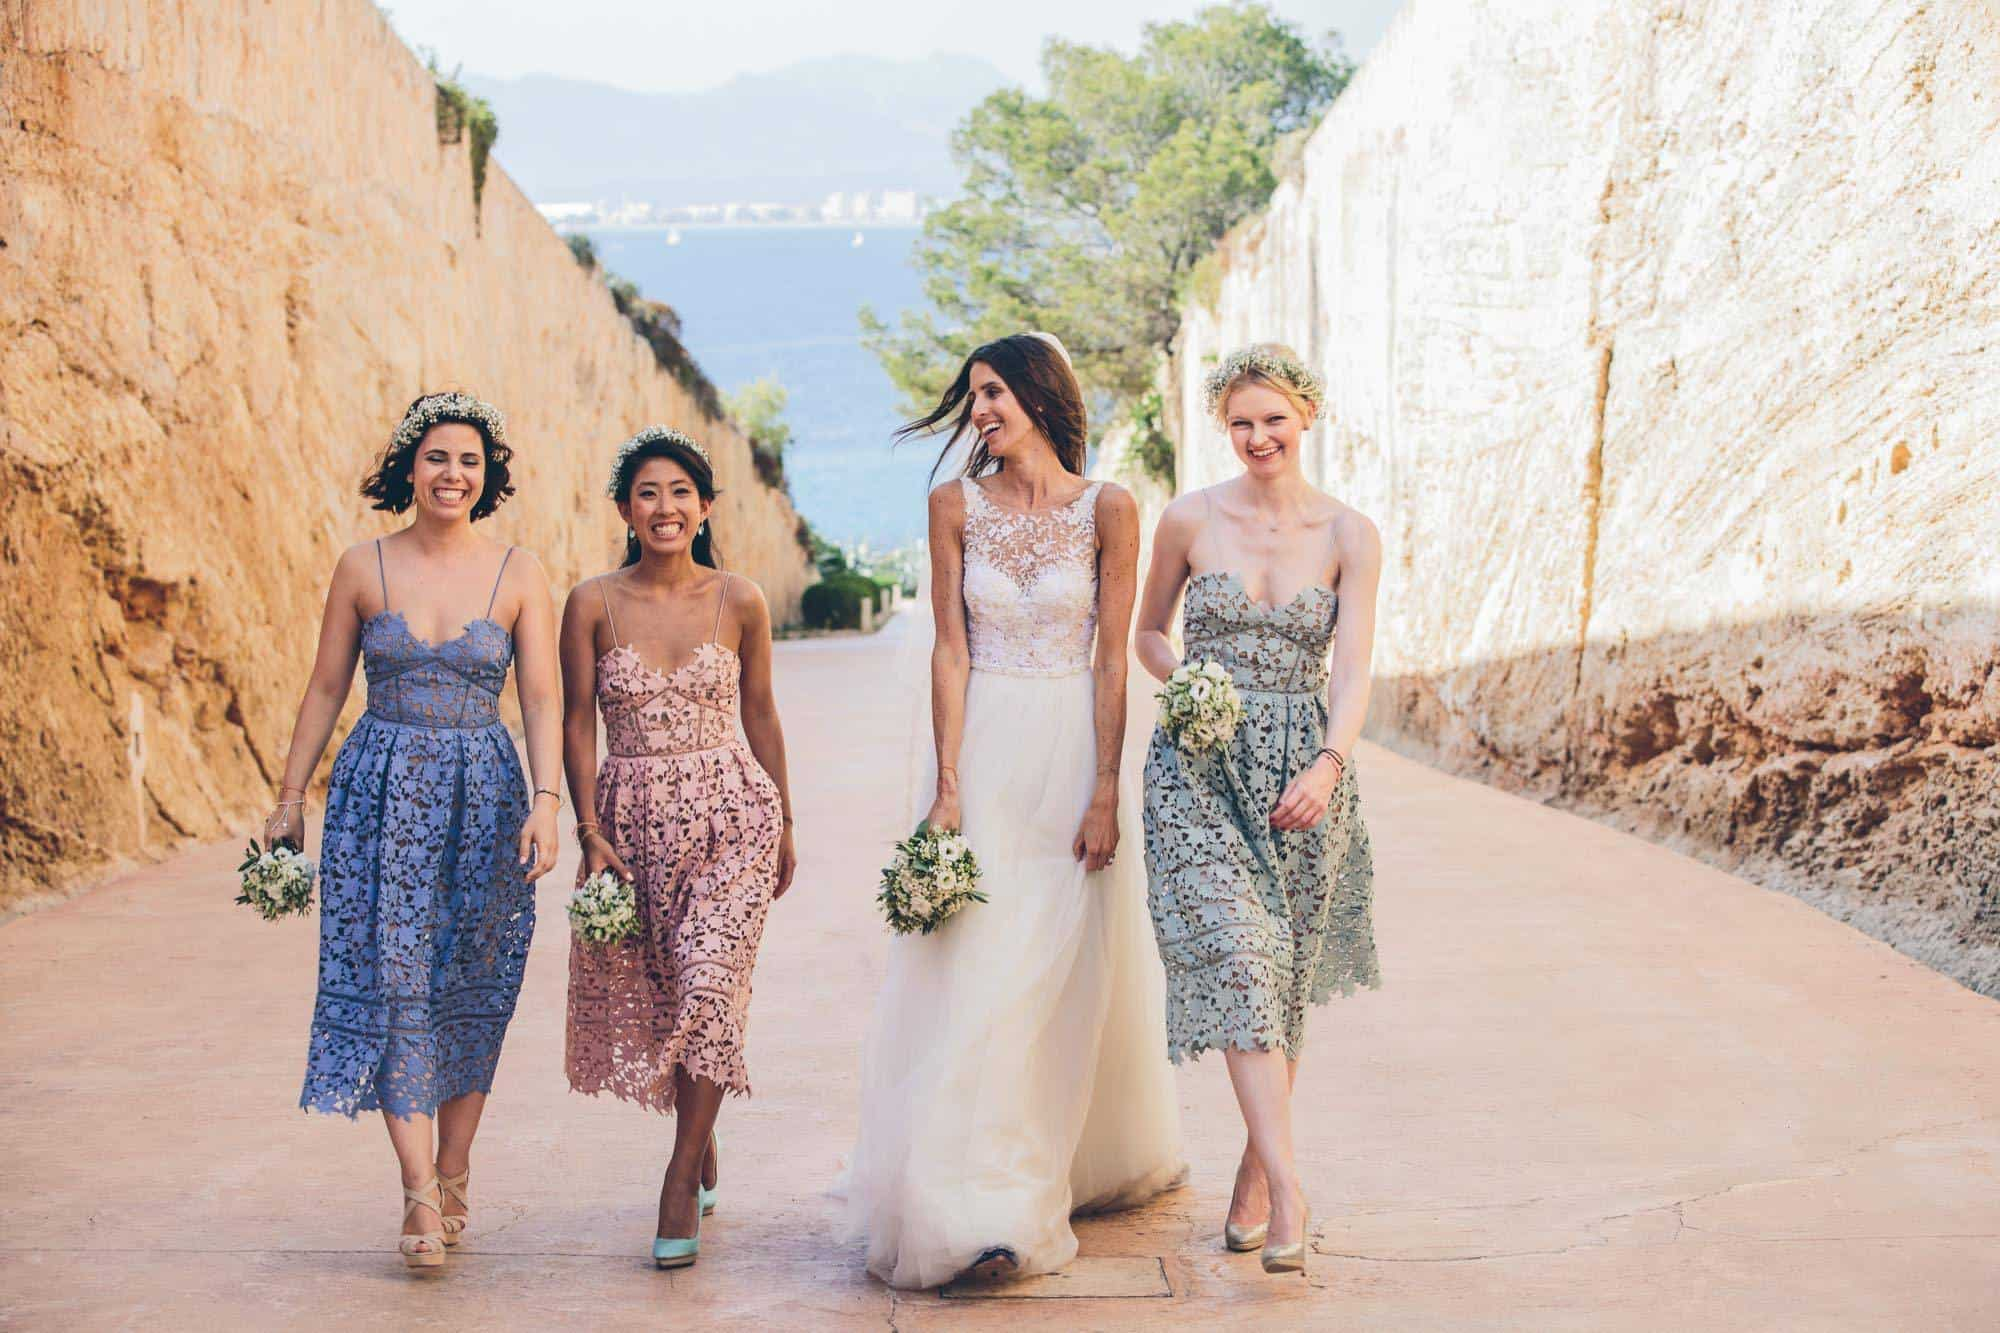 Married in Mallorca - Bride with brides maids